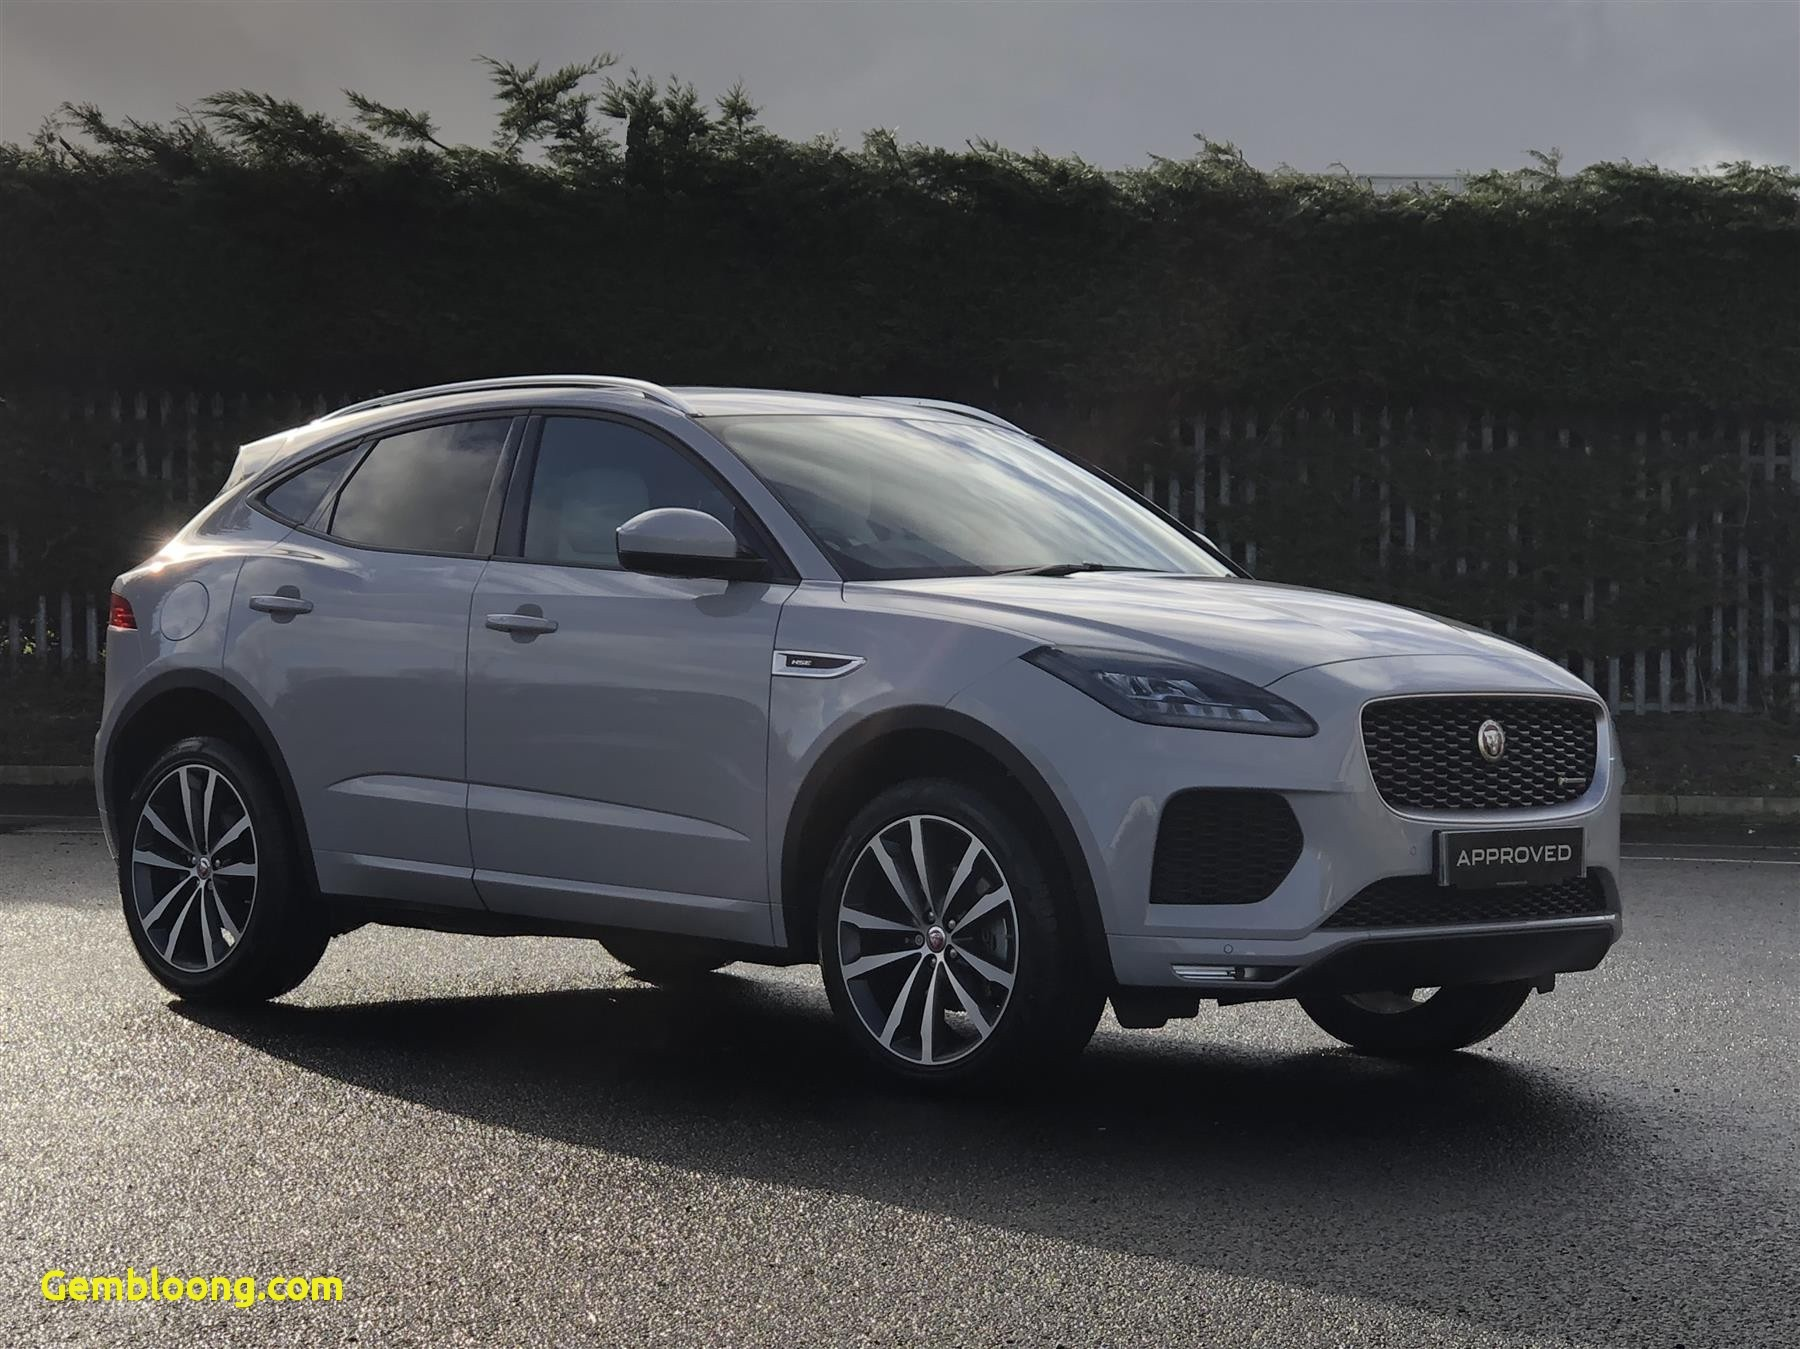 find me a used car new new used cars near me dealership unique used 2017 jaguar